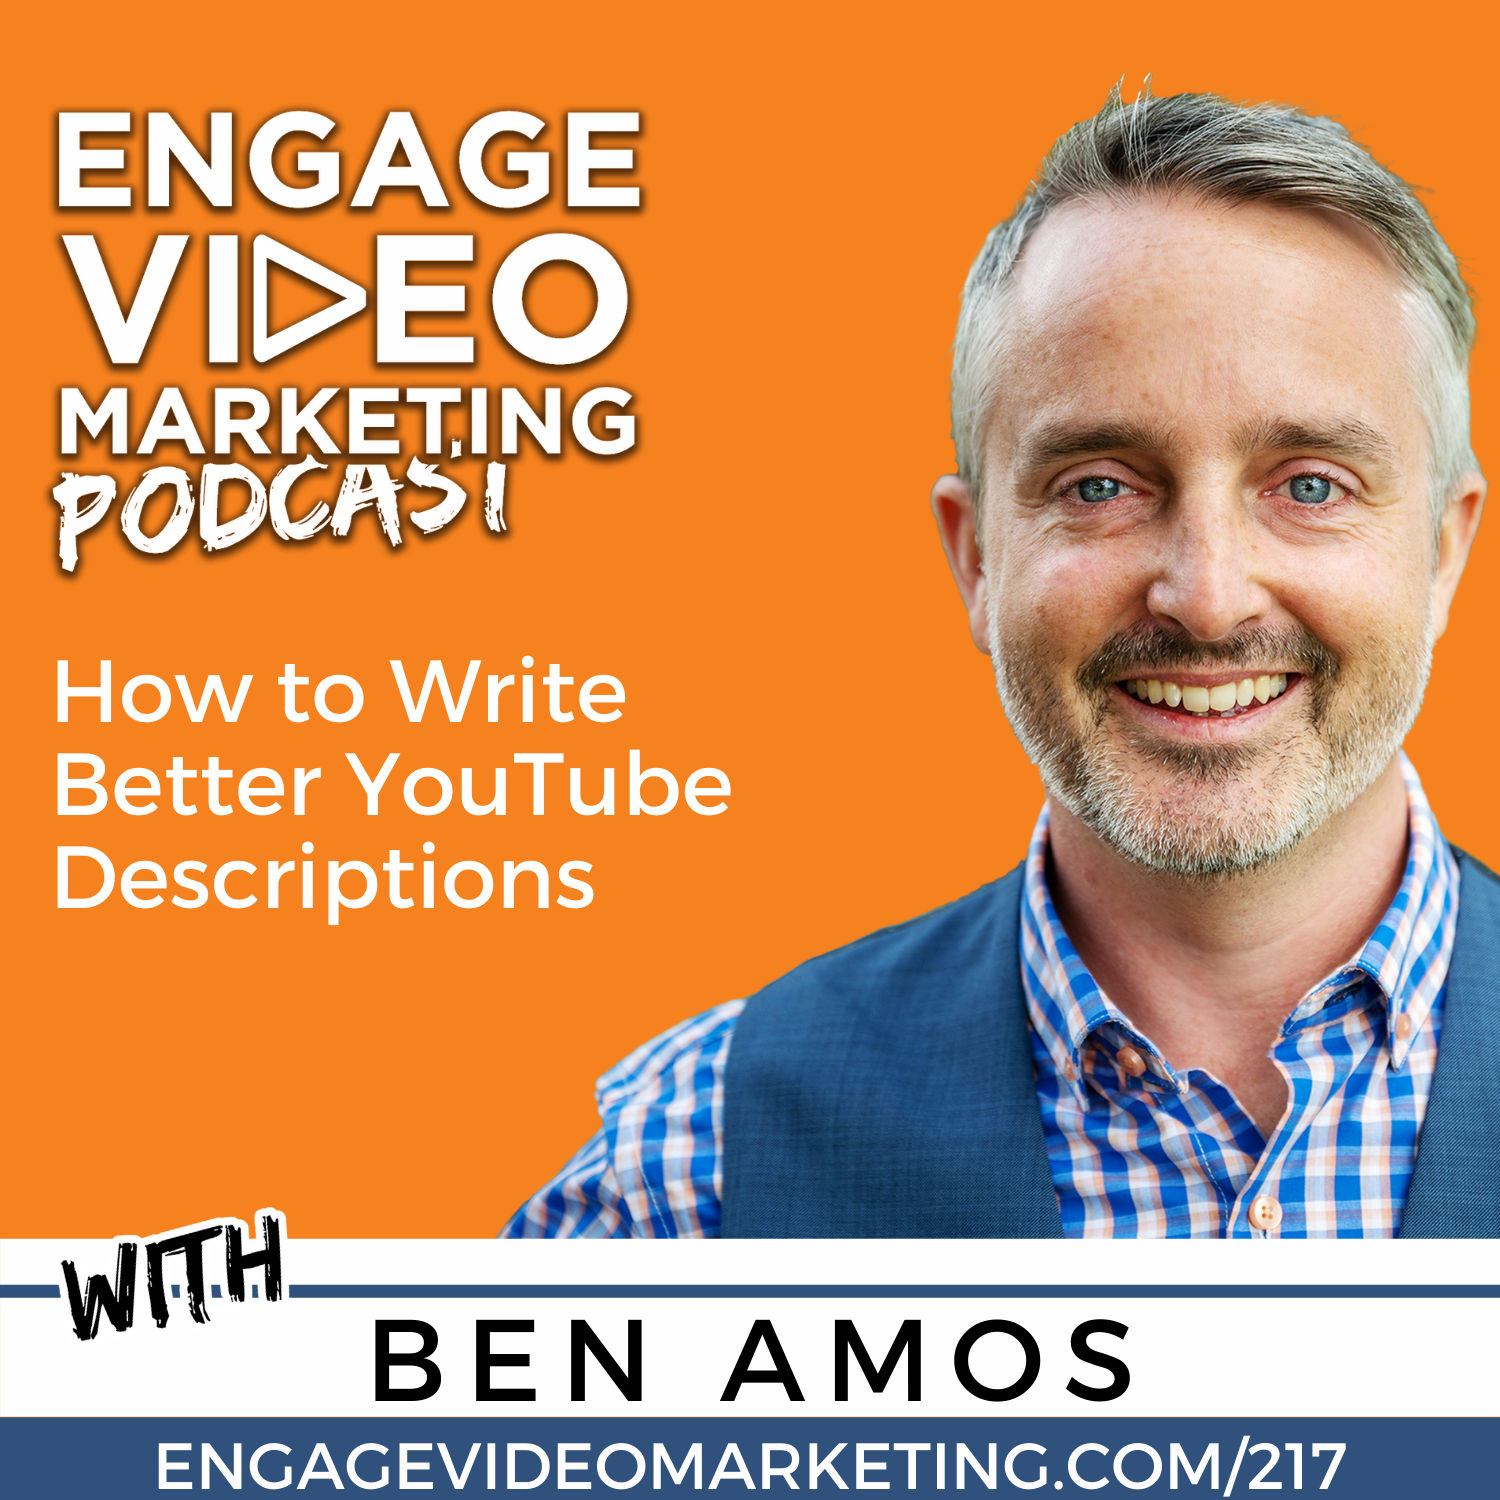 How to Write Better YouTube Descriptions with Ben Amos